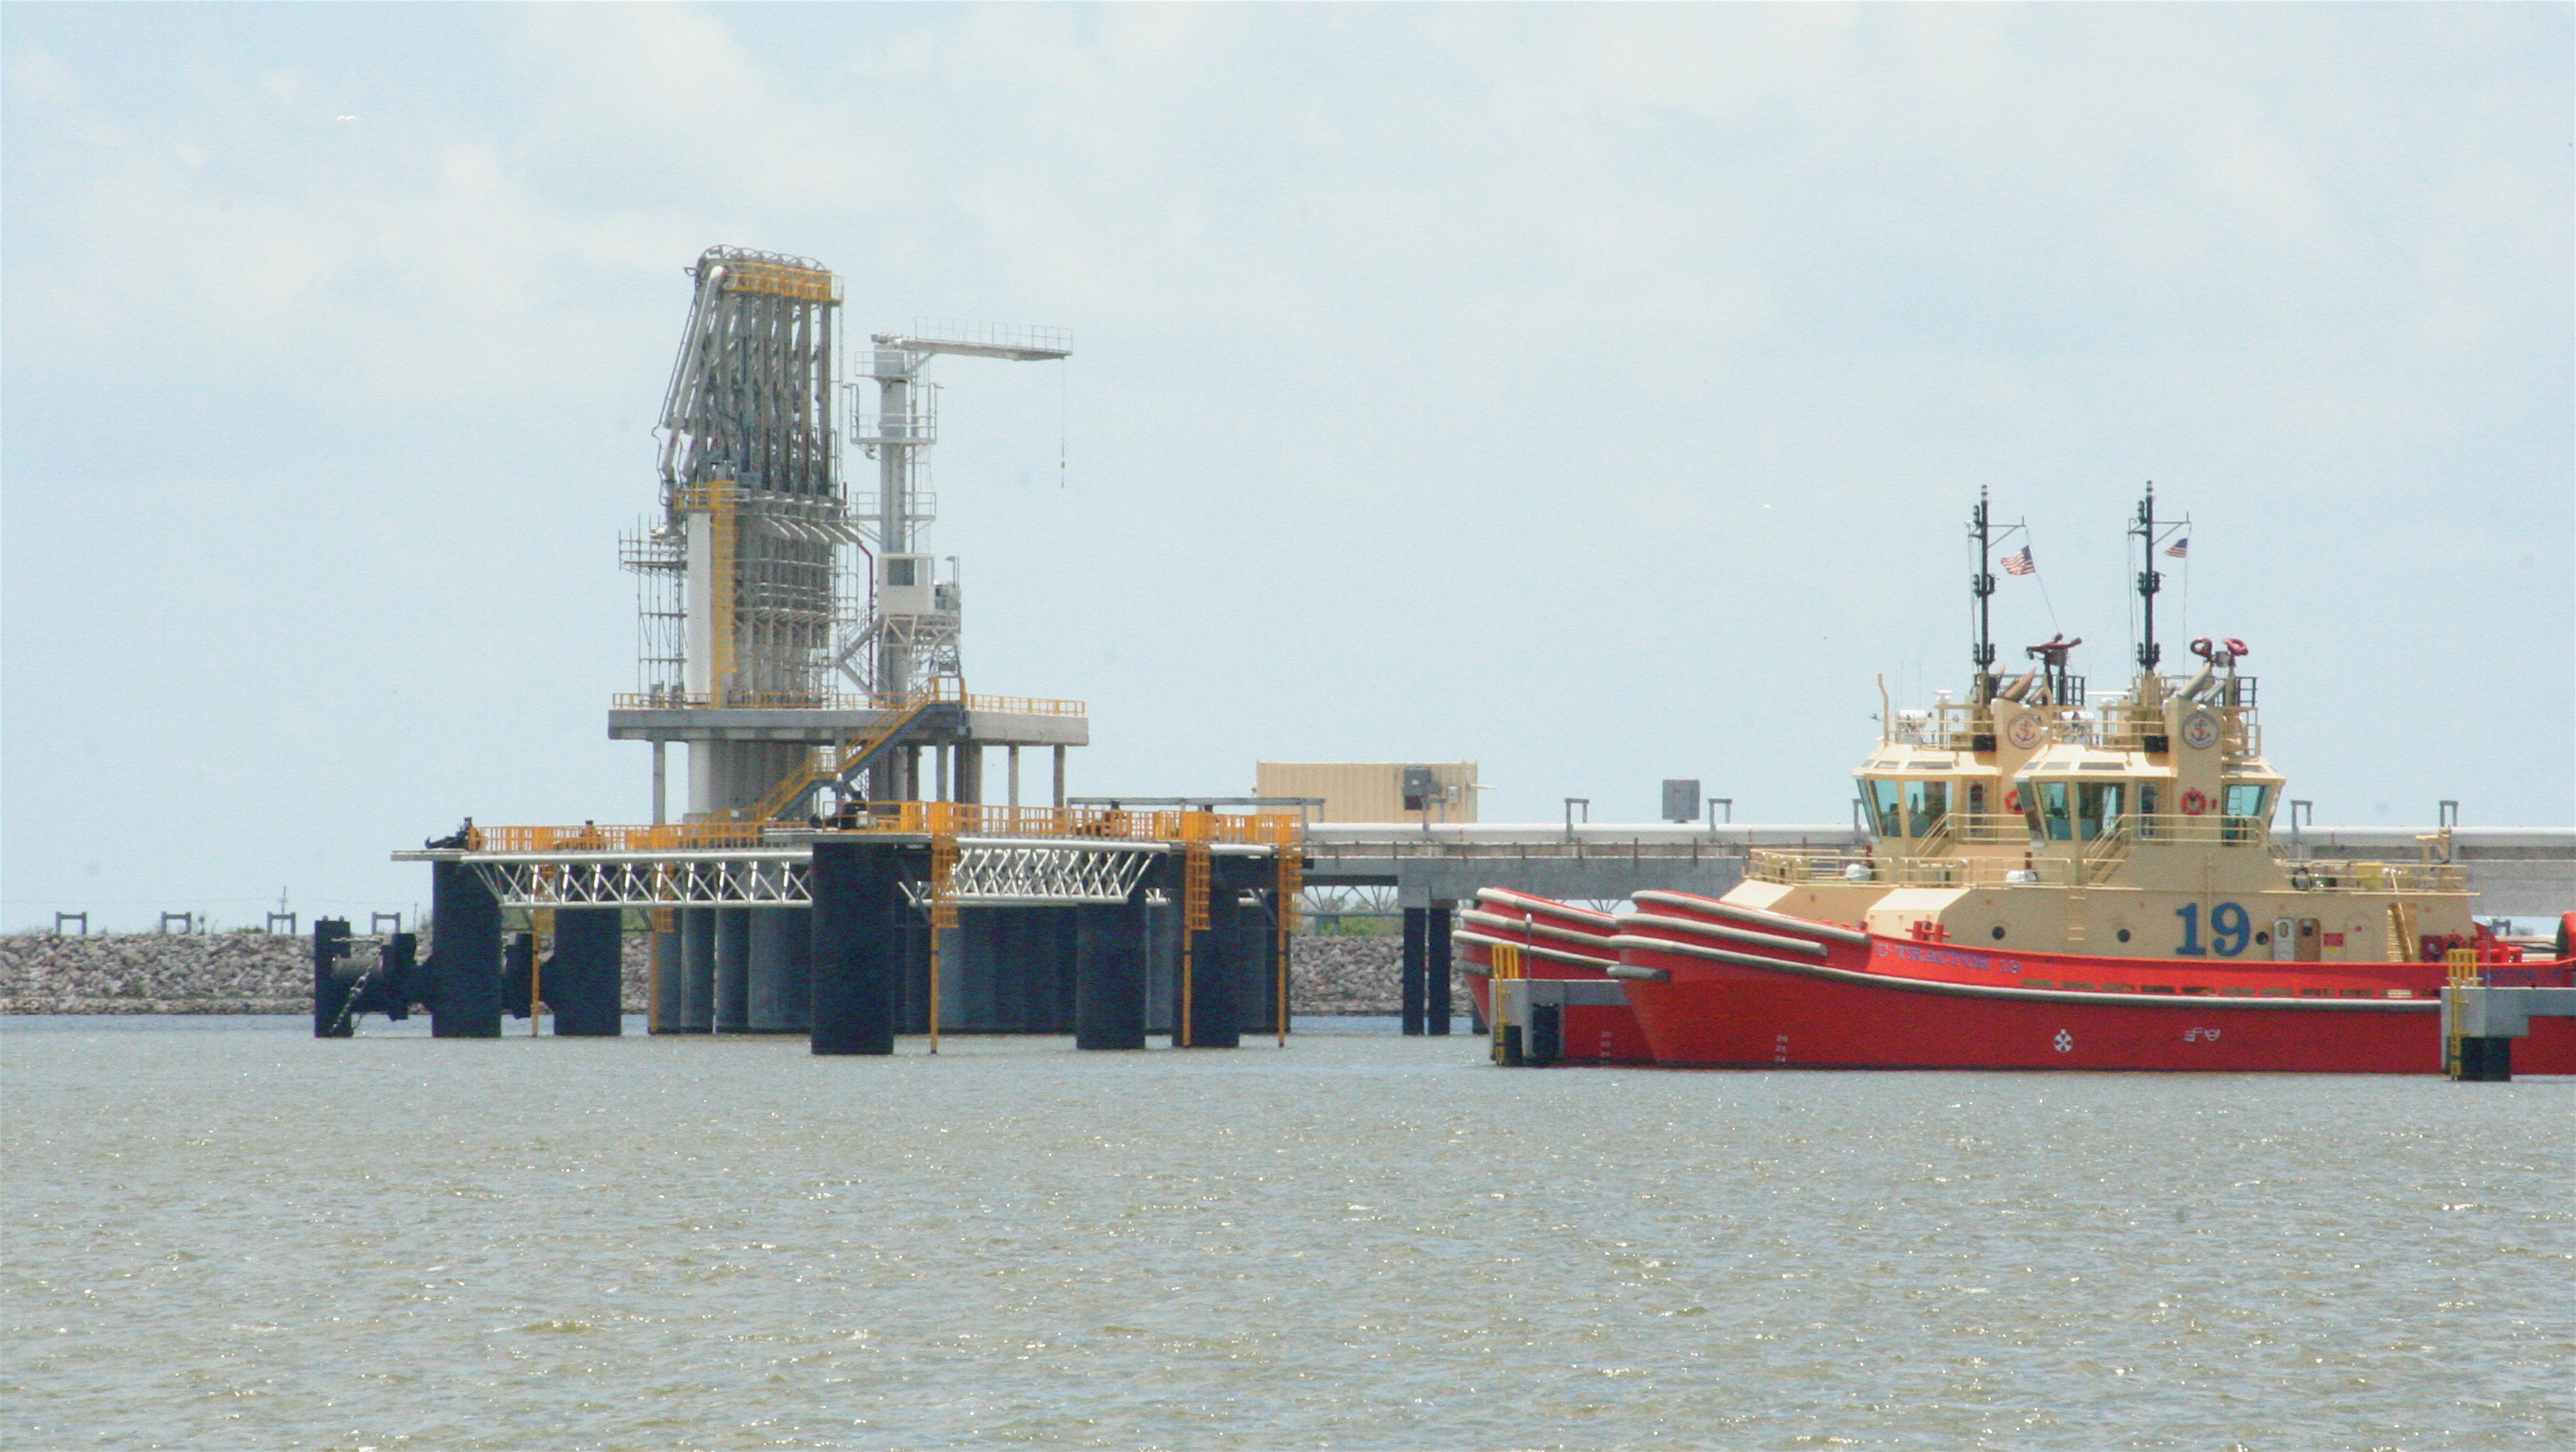 sabine pass dating Sabine pass liquefaction, llc  spl requests authorization for a 20-year period commencing on the earlier of the date of first export or eight years from the date.